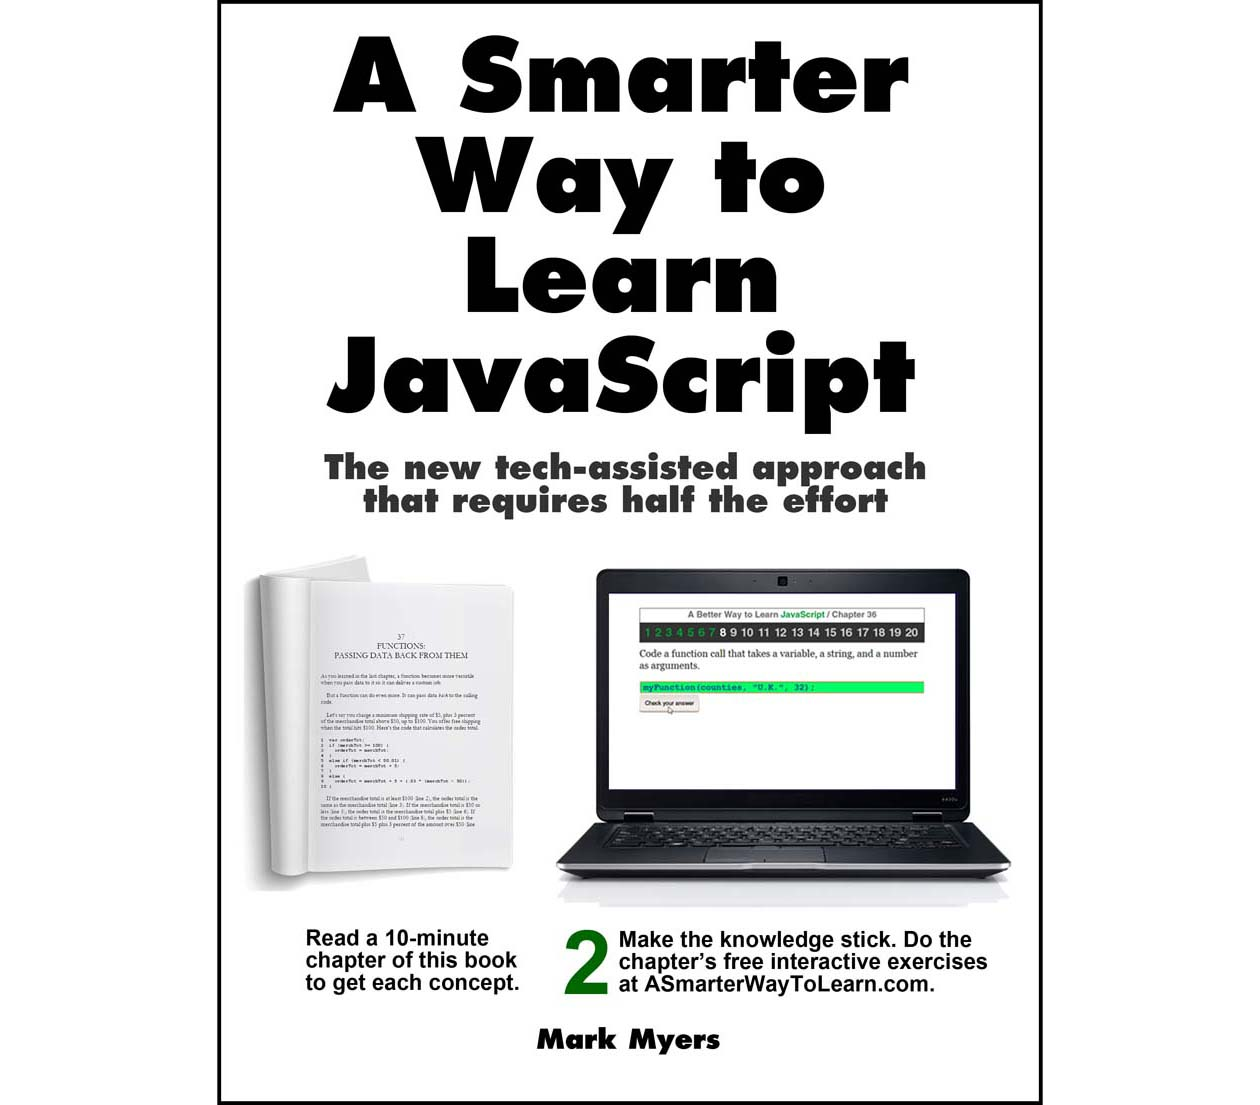 A Smarter Way to Learn HTML & CSS - pdf - Free IT eBooks ...